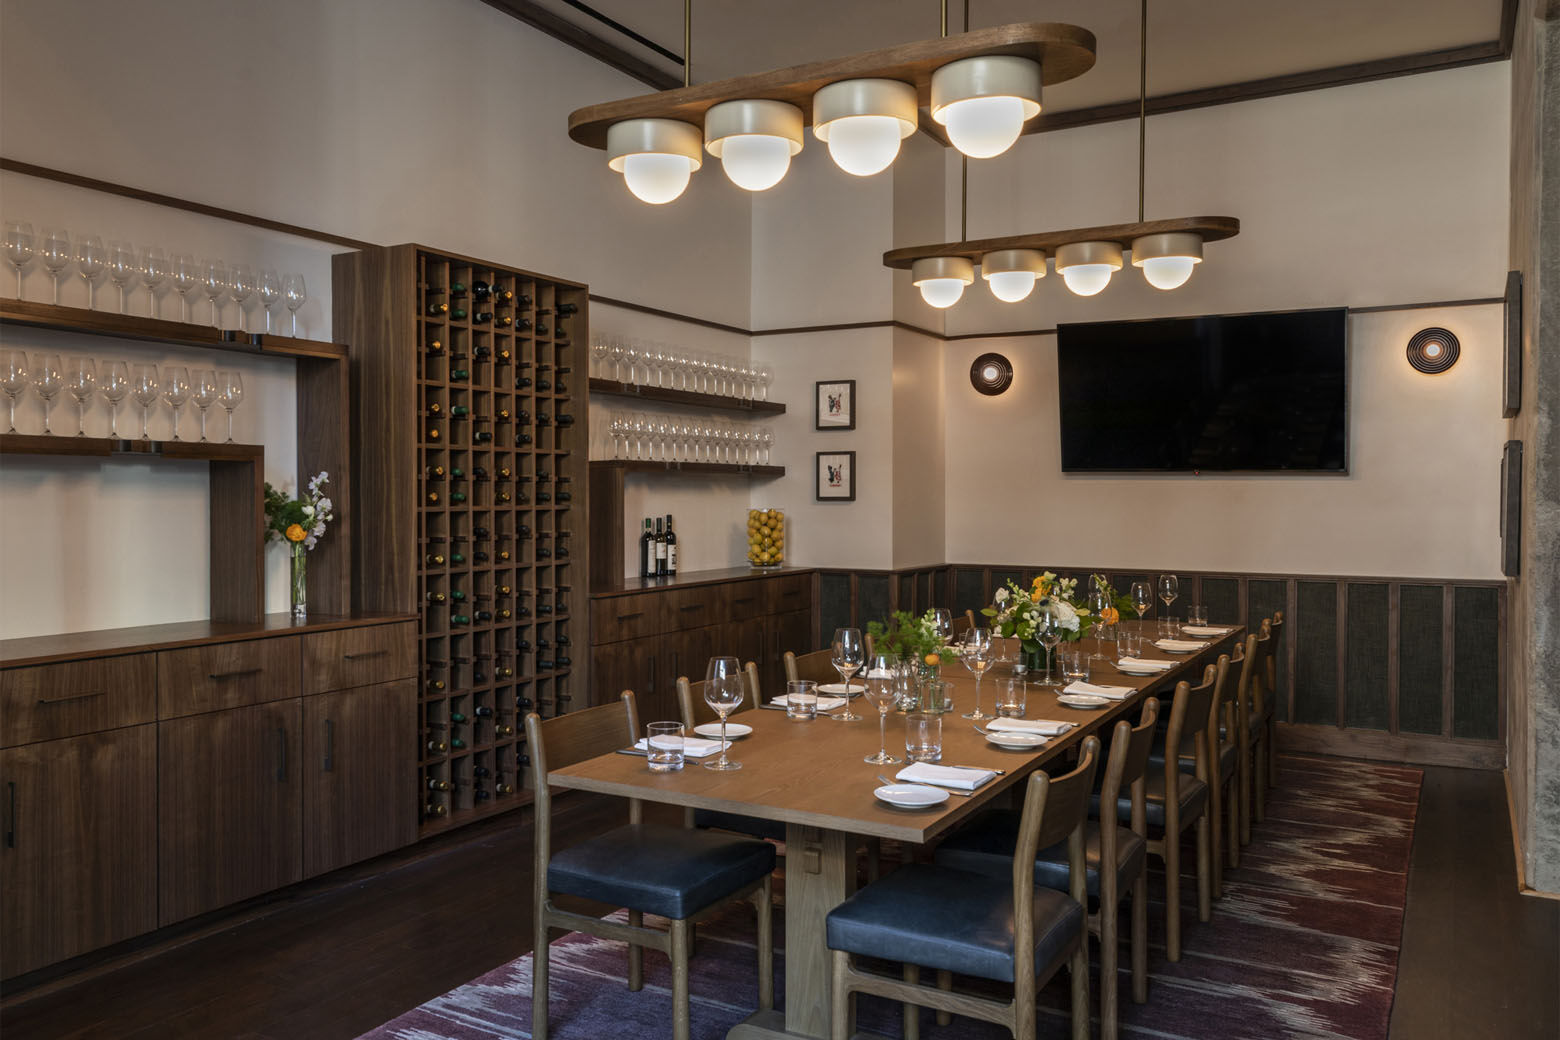 Maialino Mare is the D.C. outpost of the original Maialino Mare restaurant from restaurater Danny Meyer's Union Square Hospitality Group, which anchors the Grammercy Park Hotel in Manhattan.